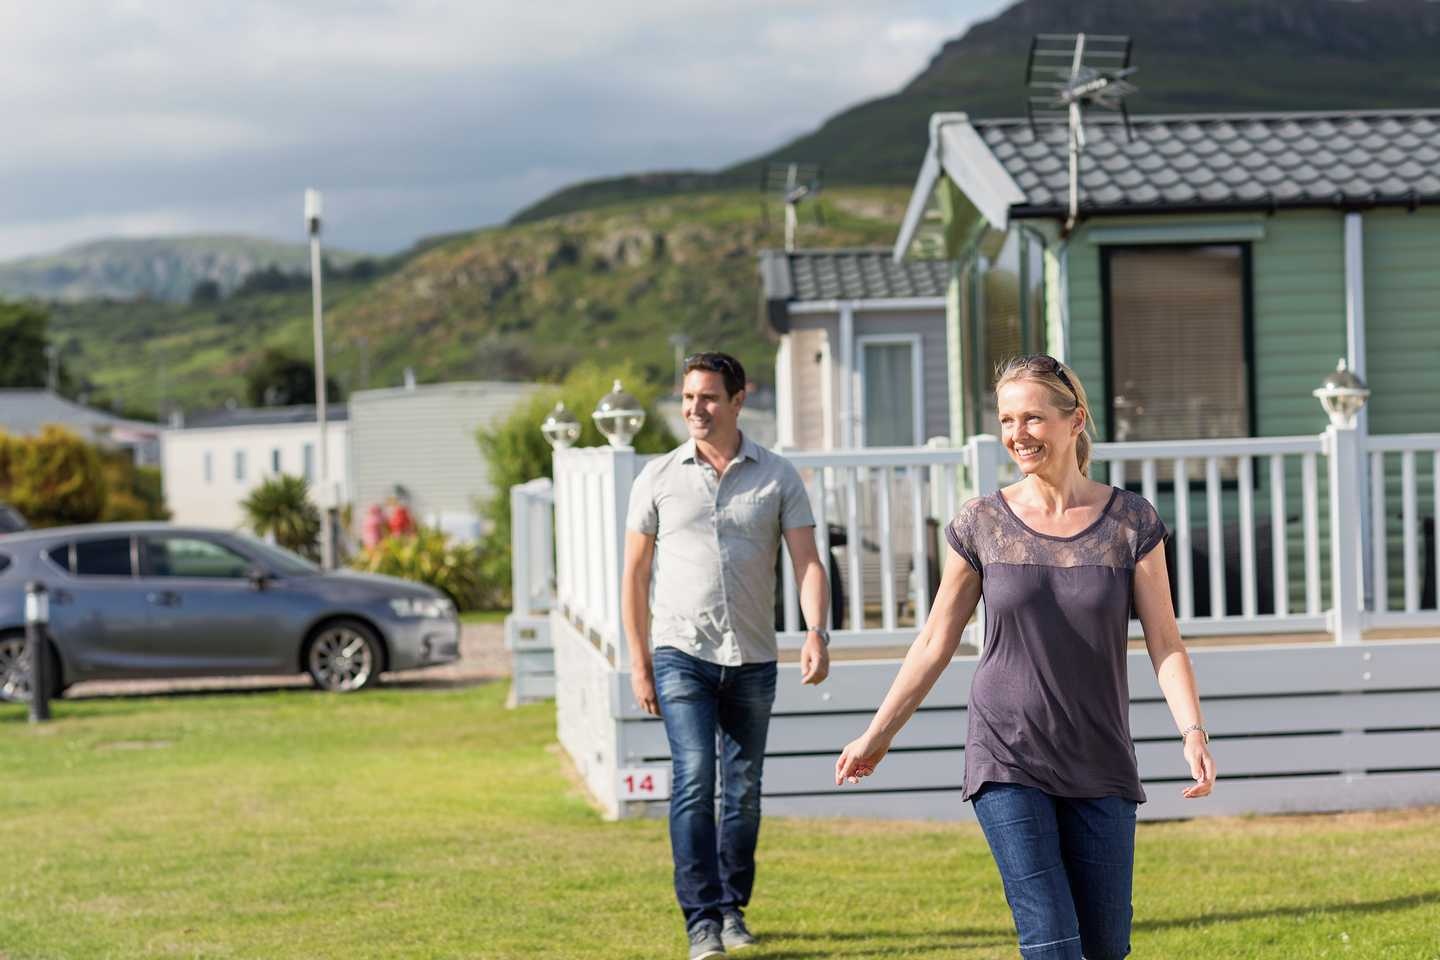 Owners walking beside the holiday homes at Cardigan View